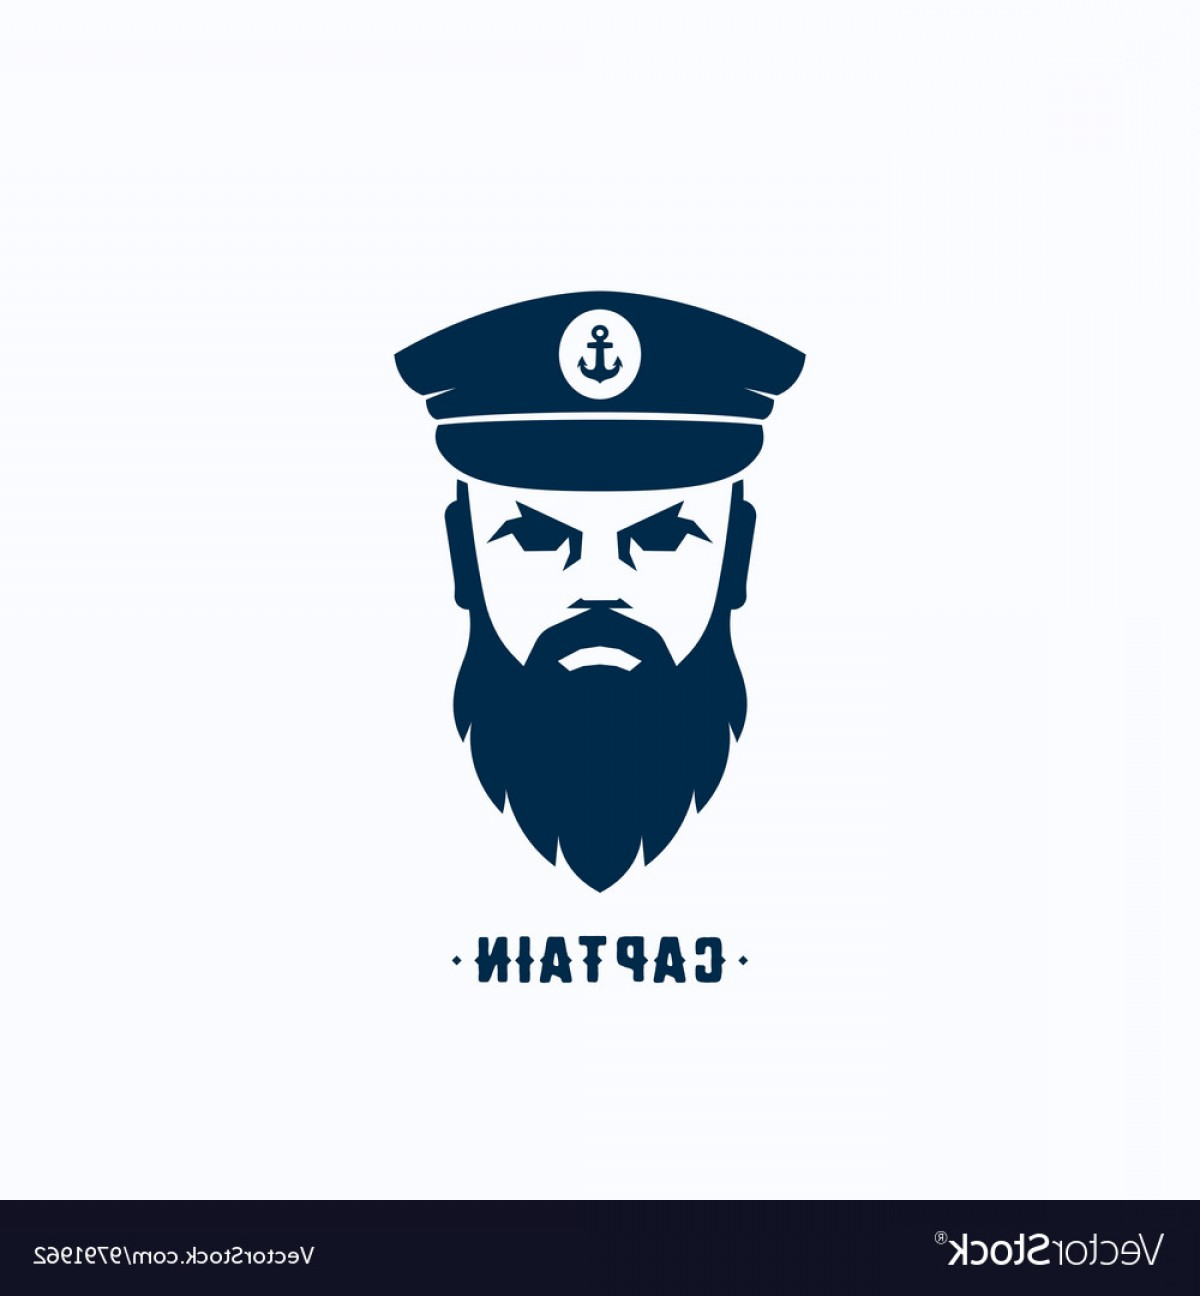 U S. Navy Shellback Logos Vector: Captain Face Silhouette Logo Template Vector